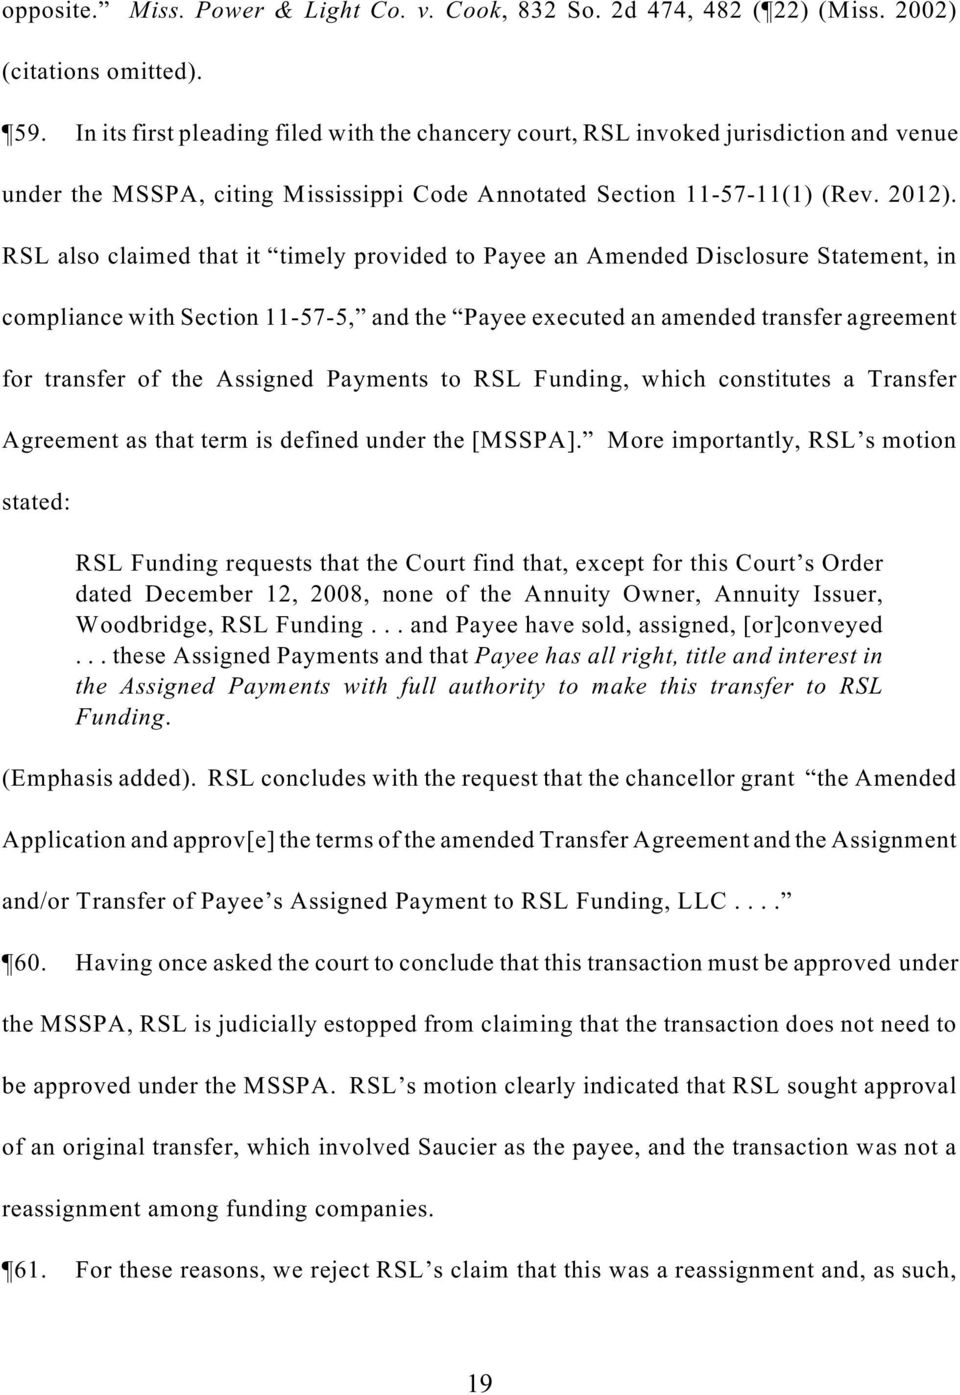 RSL also claimed that it timely provided to Payee an Amended Disclosure Statement, in compliance with Section 11-57-5, and the Payee executed an amended transfer agreement for transfer of the